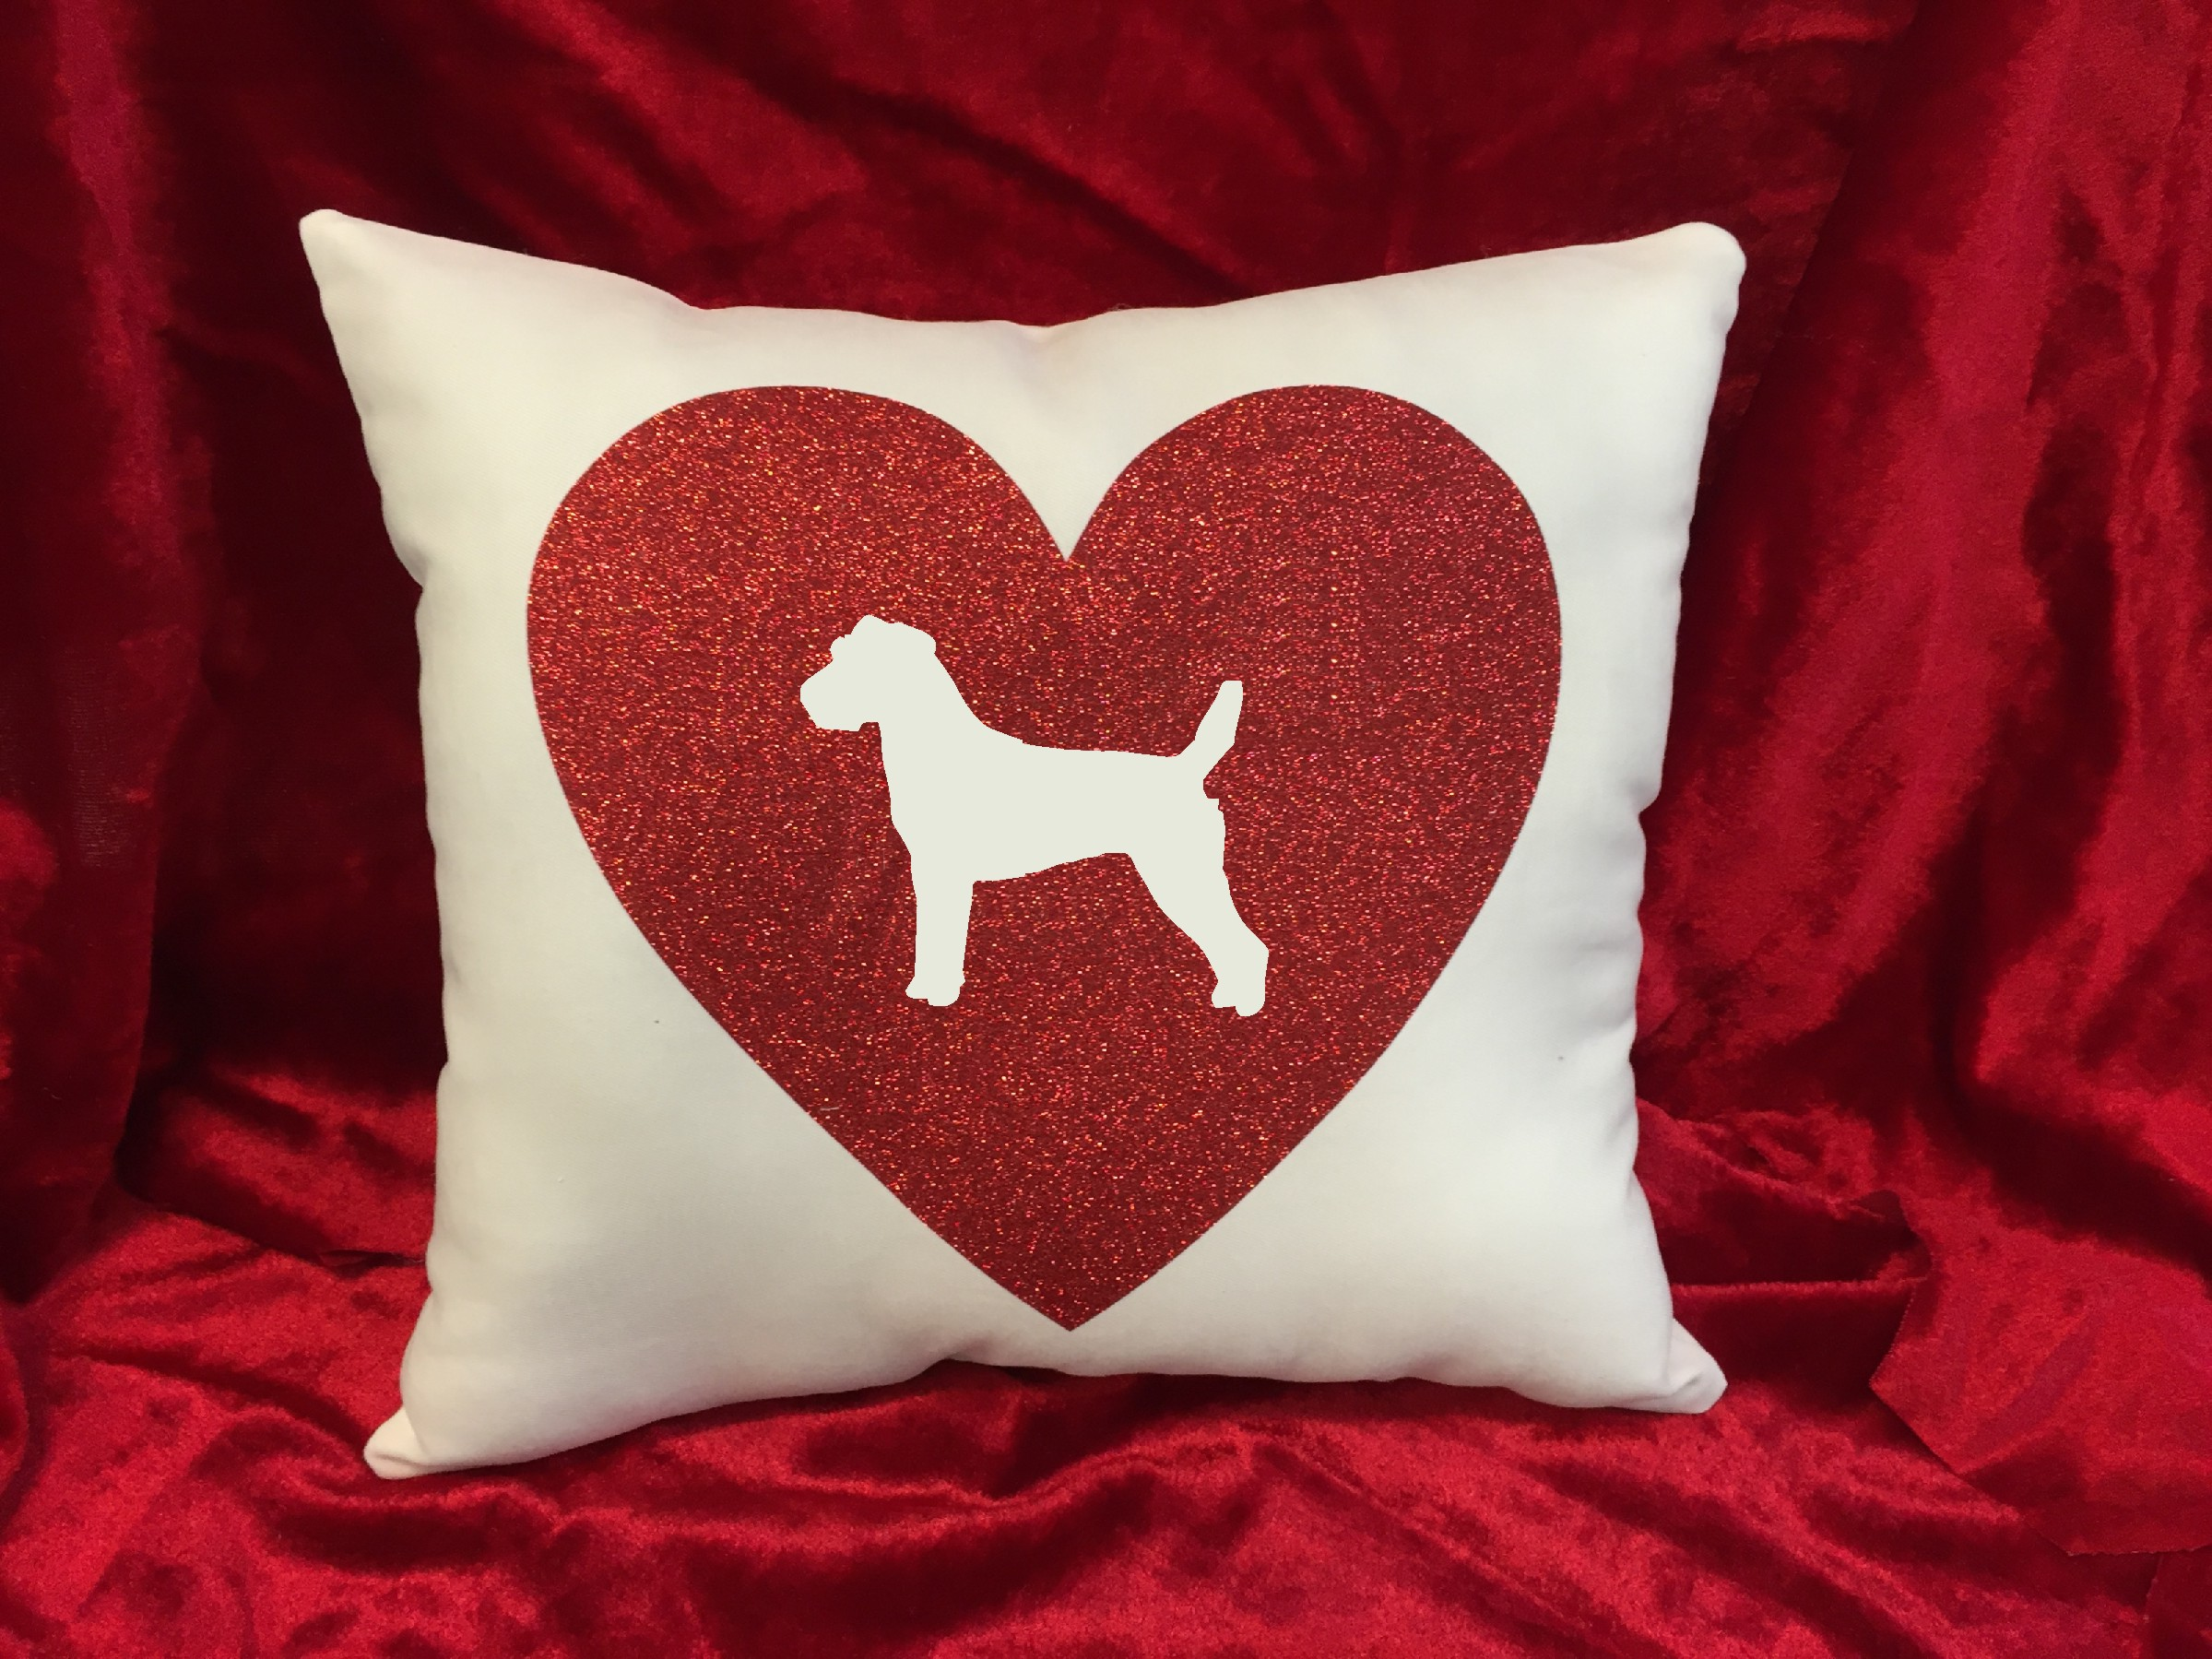 Dogs - Throw Pillow - Parson Russell Terrier